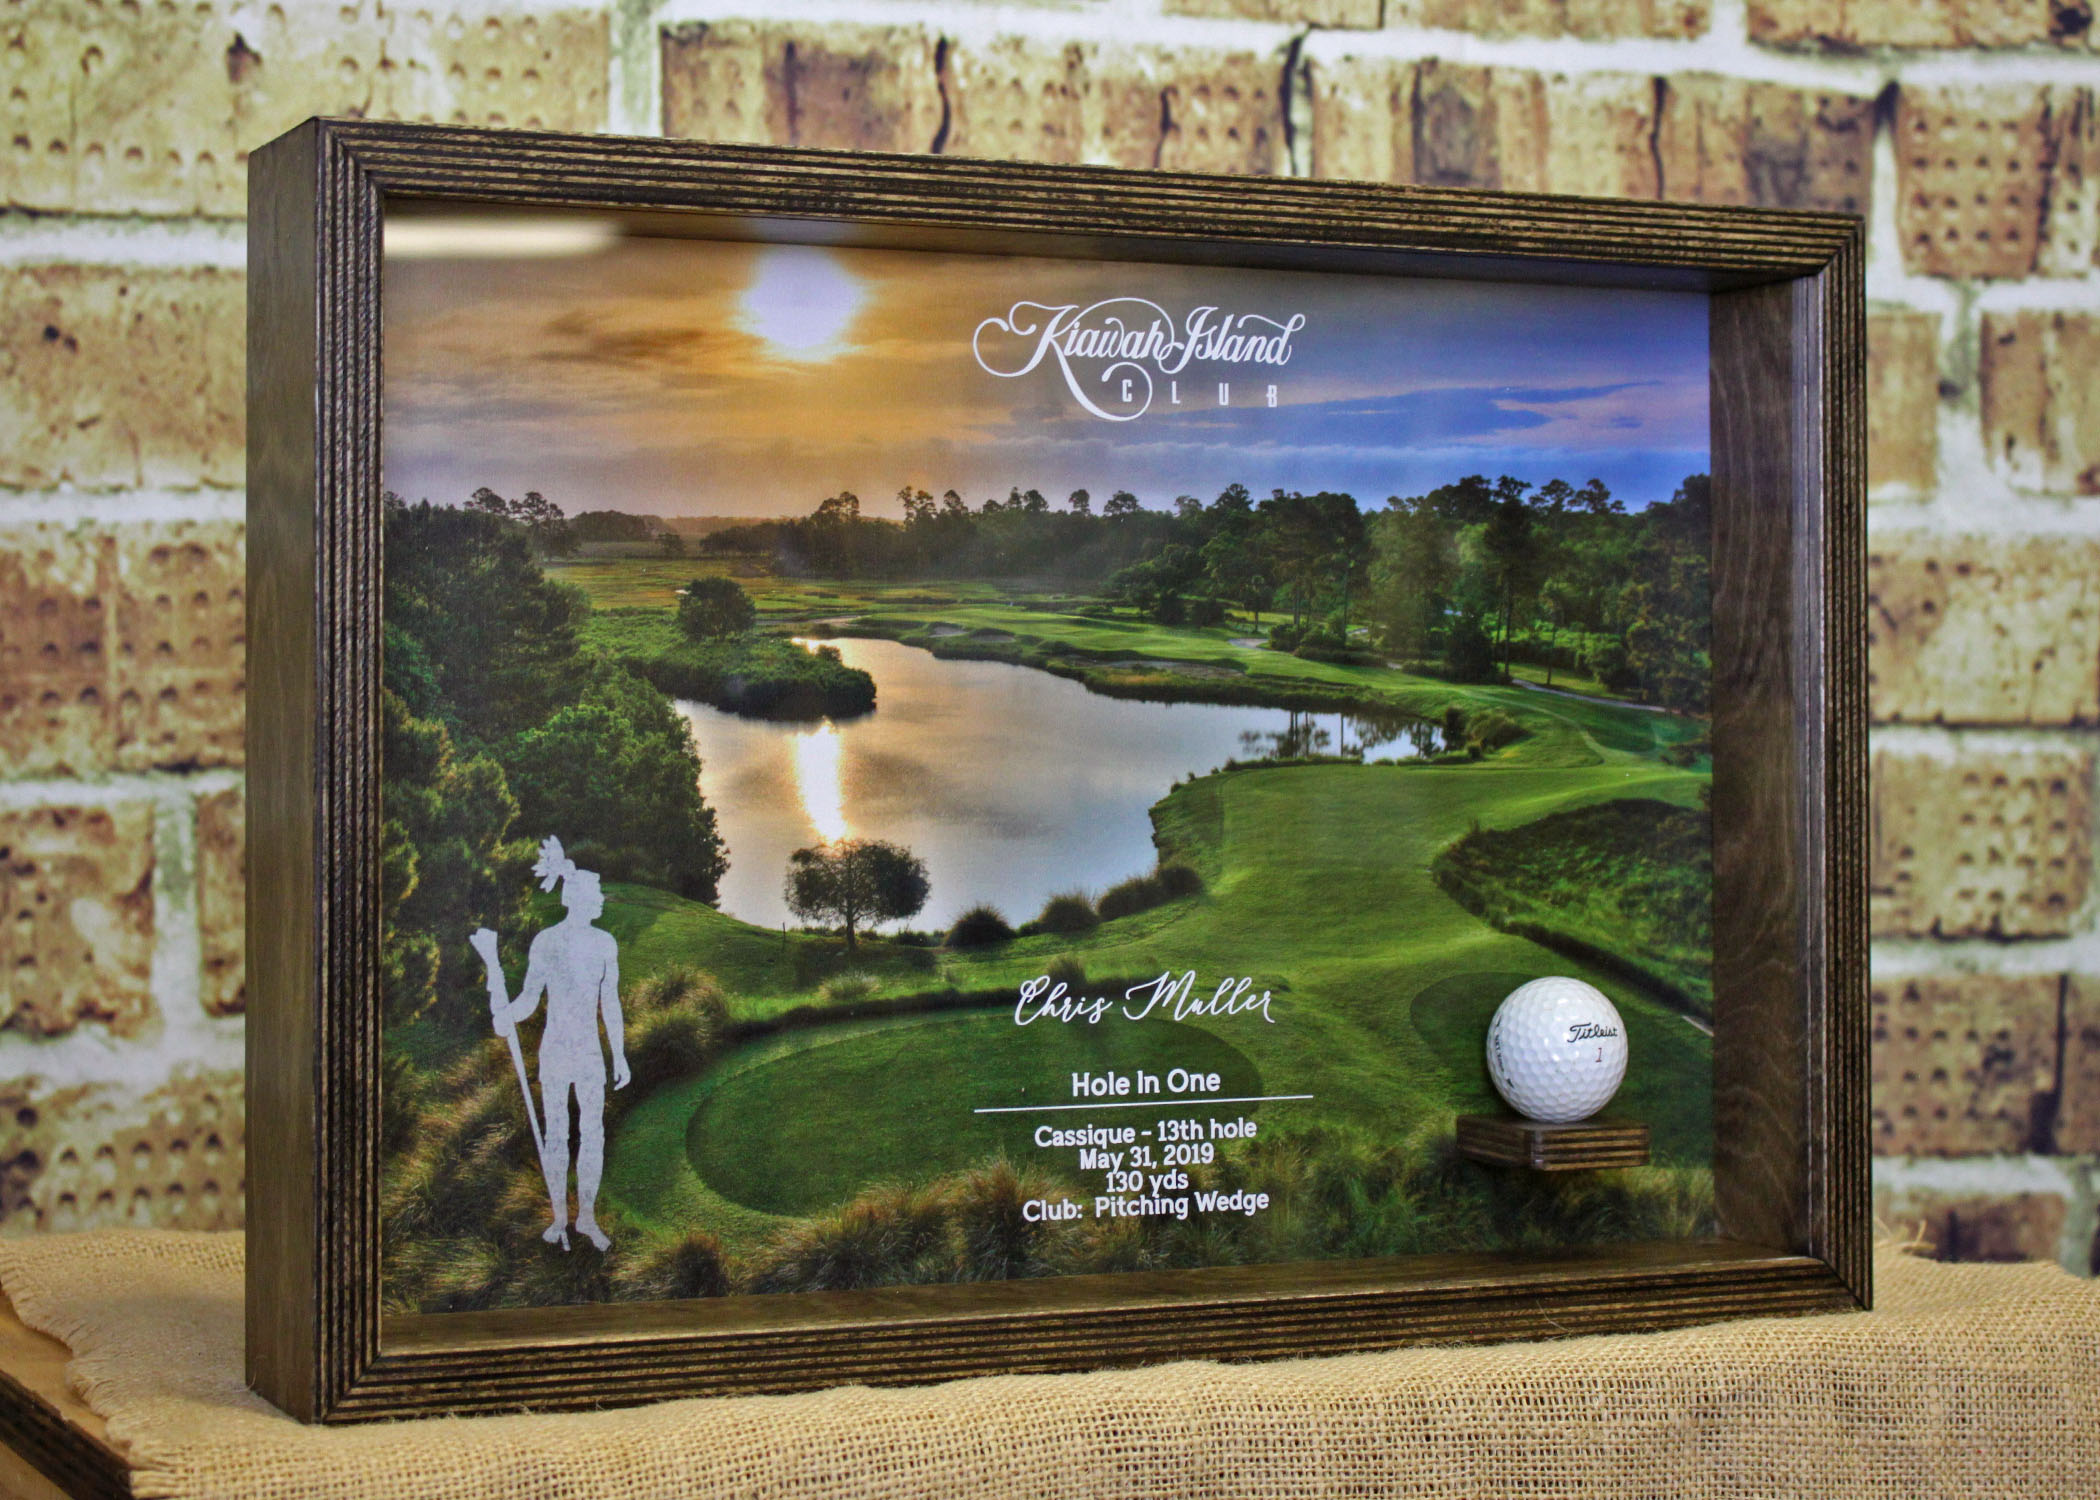 2Kiawah Island Hole in One Trophy - $135